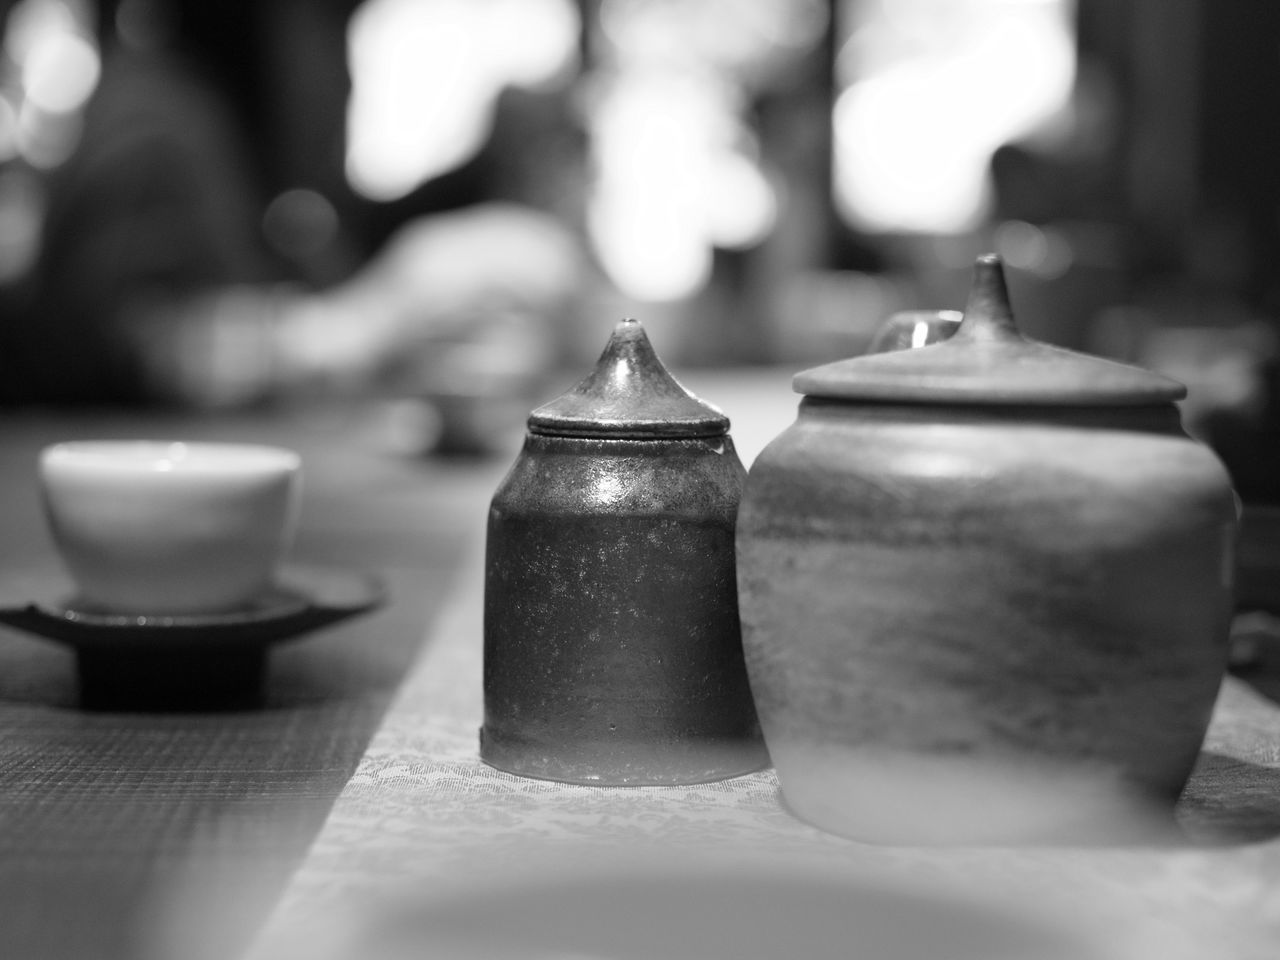 table, selective focus, close-up, indoors, no people, still life, food and drink, focus on foreground, teapot, group of objects, mug, candle, cup, tea, drink, hot drink, food, day, container, arrangement, crockery, tea cup